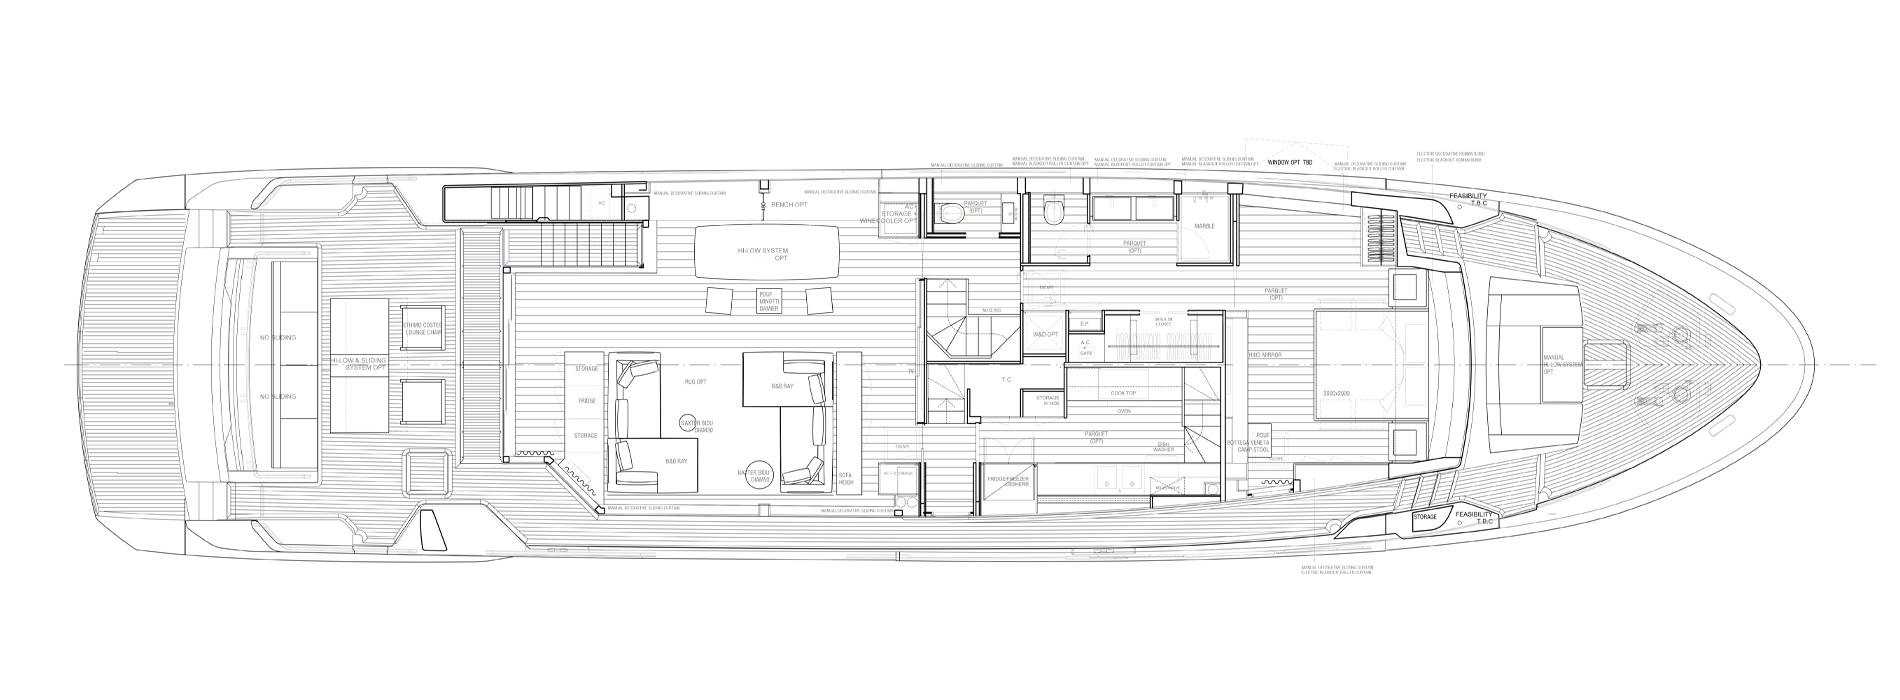 Sanlorenzo Yachts SL102A-746 under offer Main deck